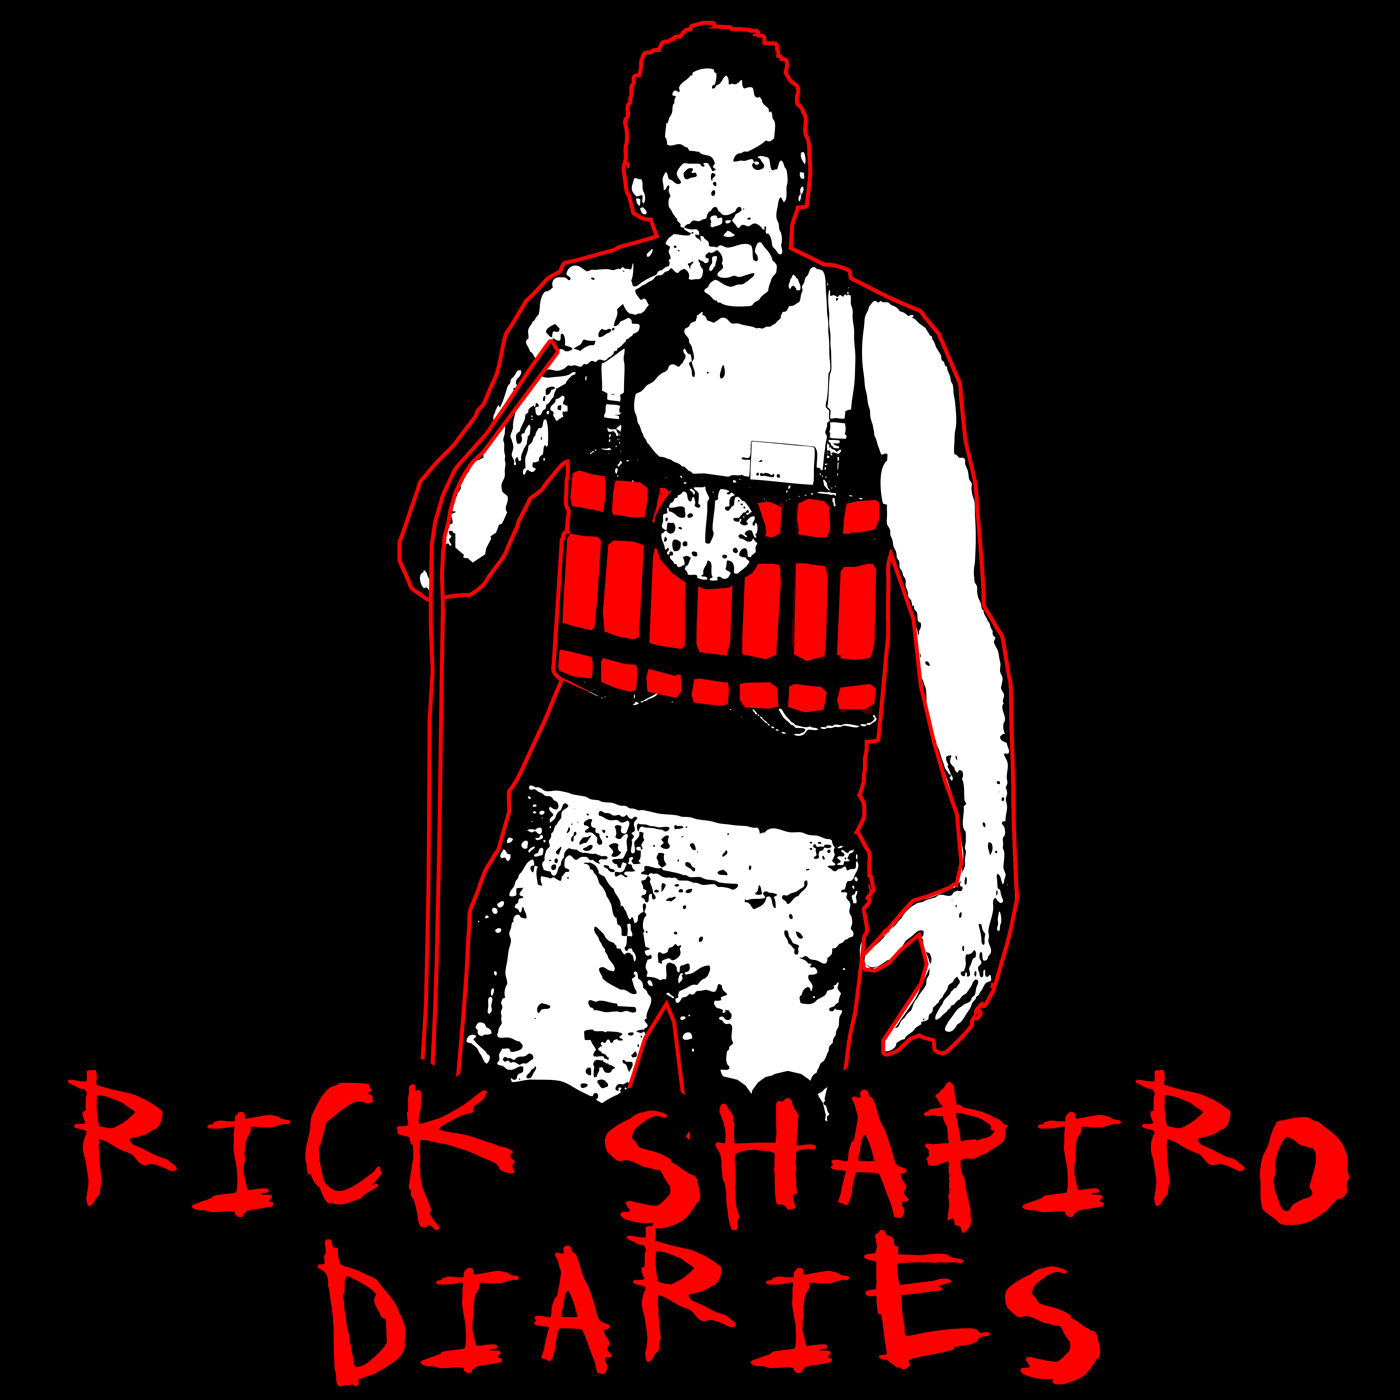 Rick Shapiro Diaries